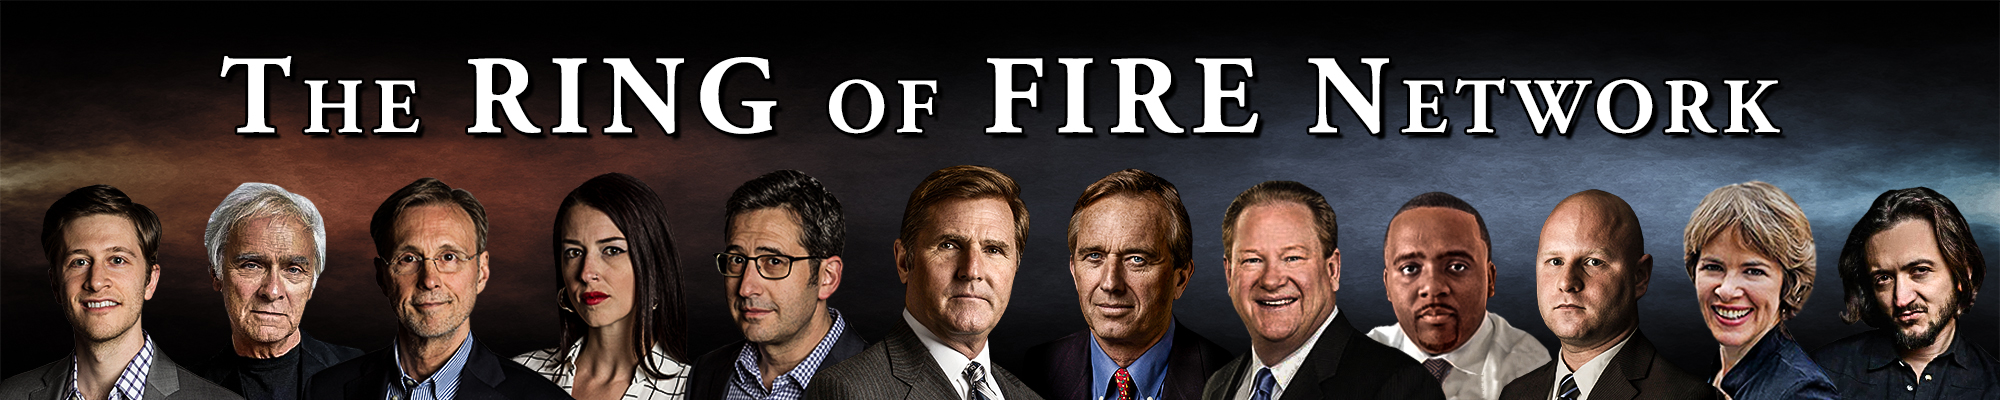 The Ring of Fire Network